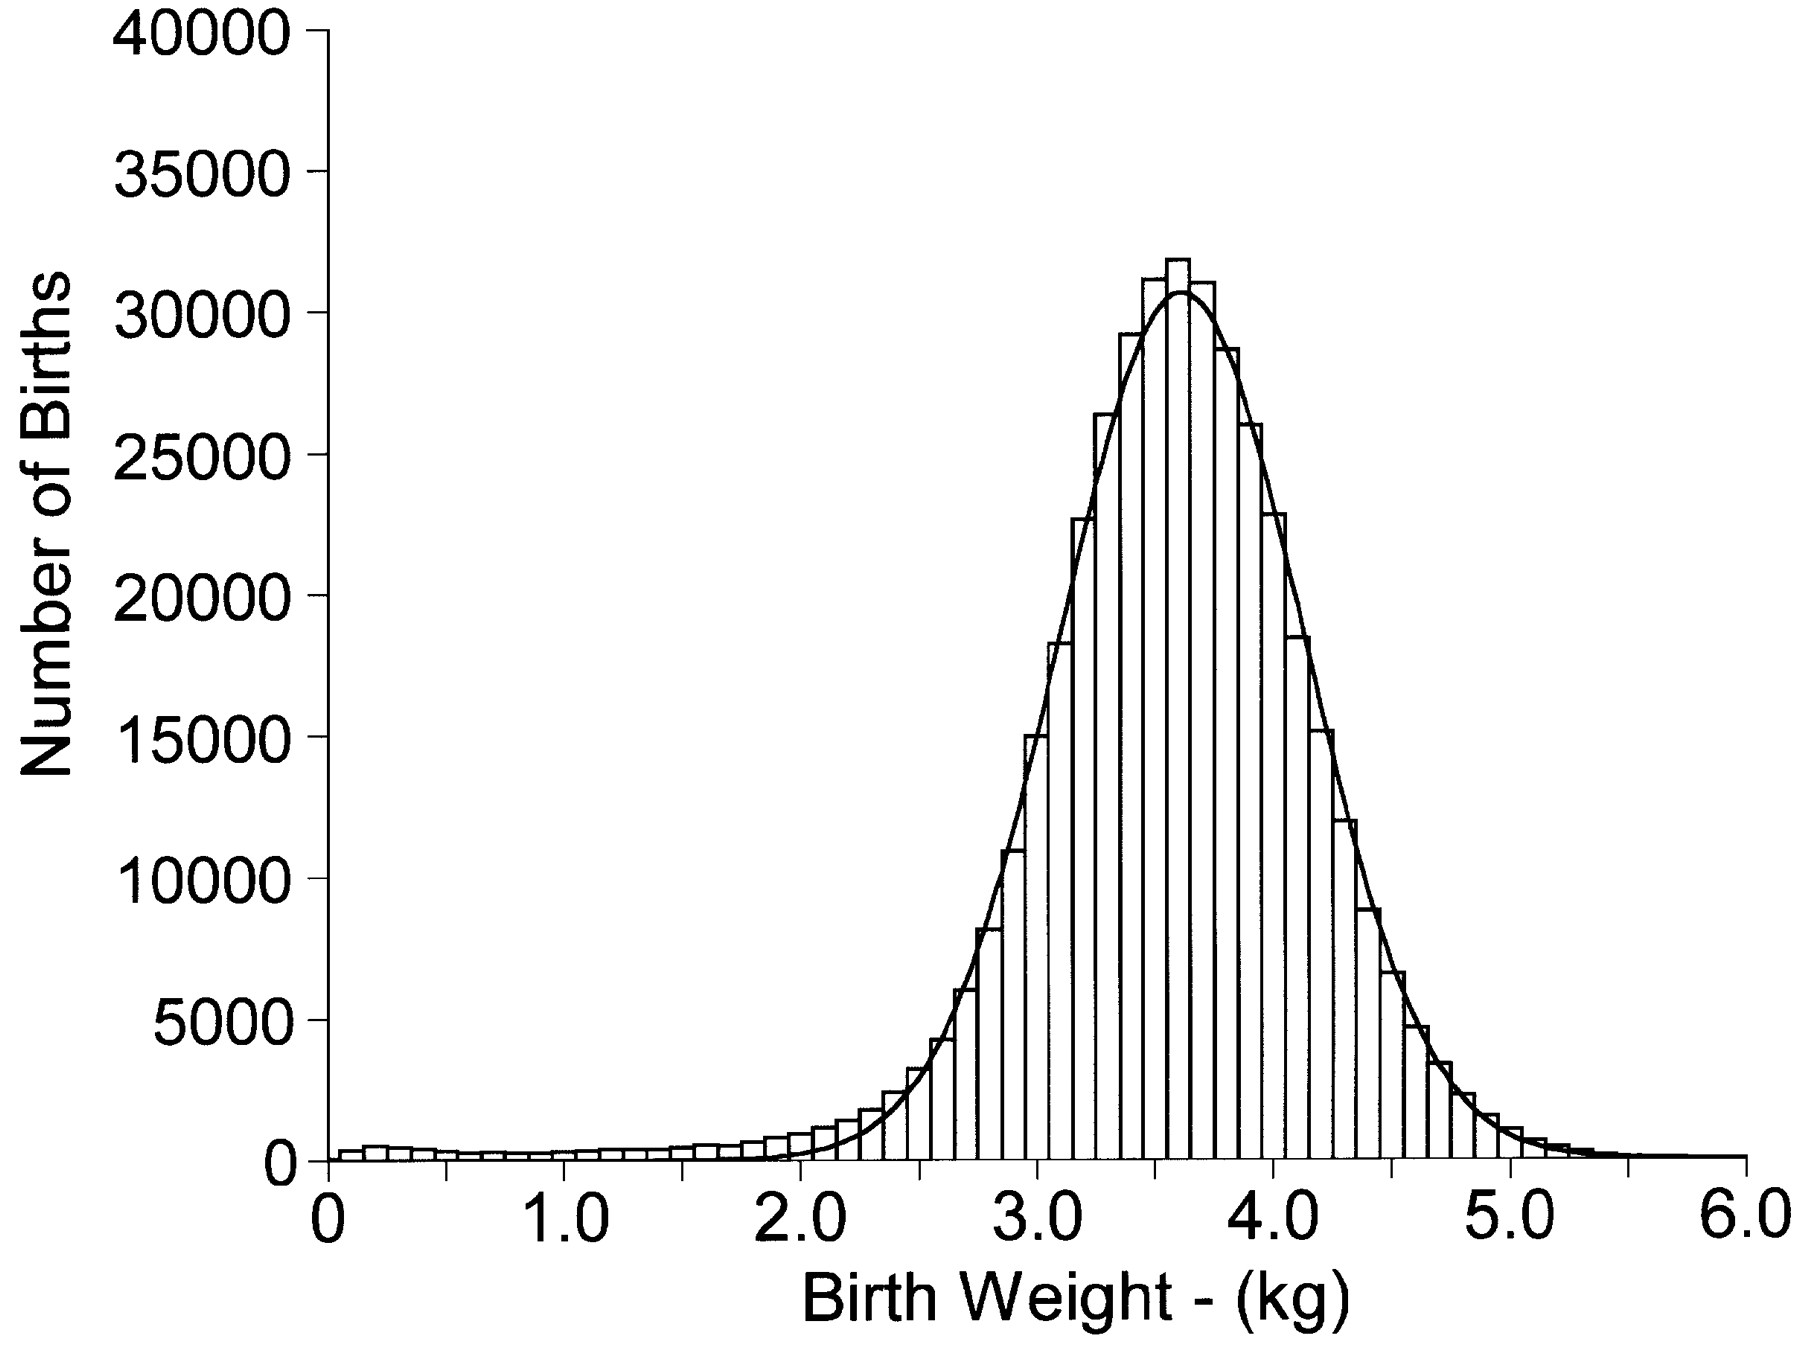 Birth Weight Distribution